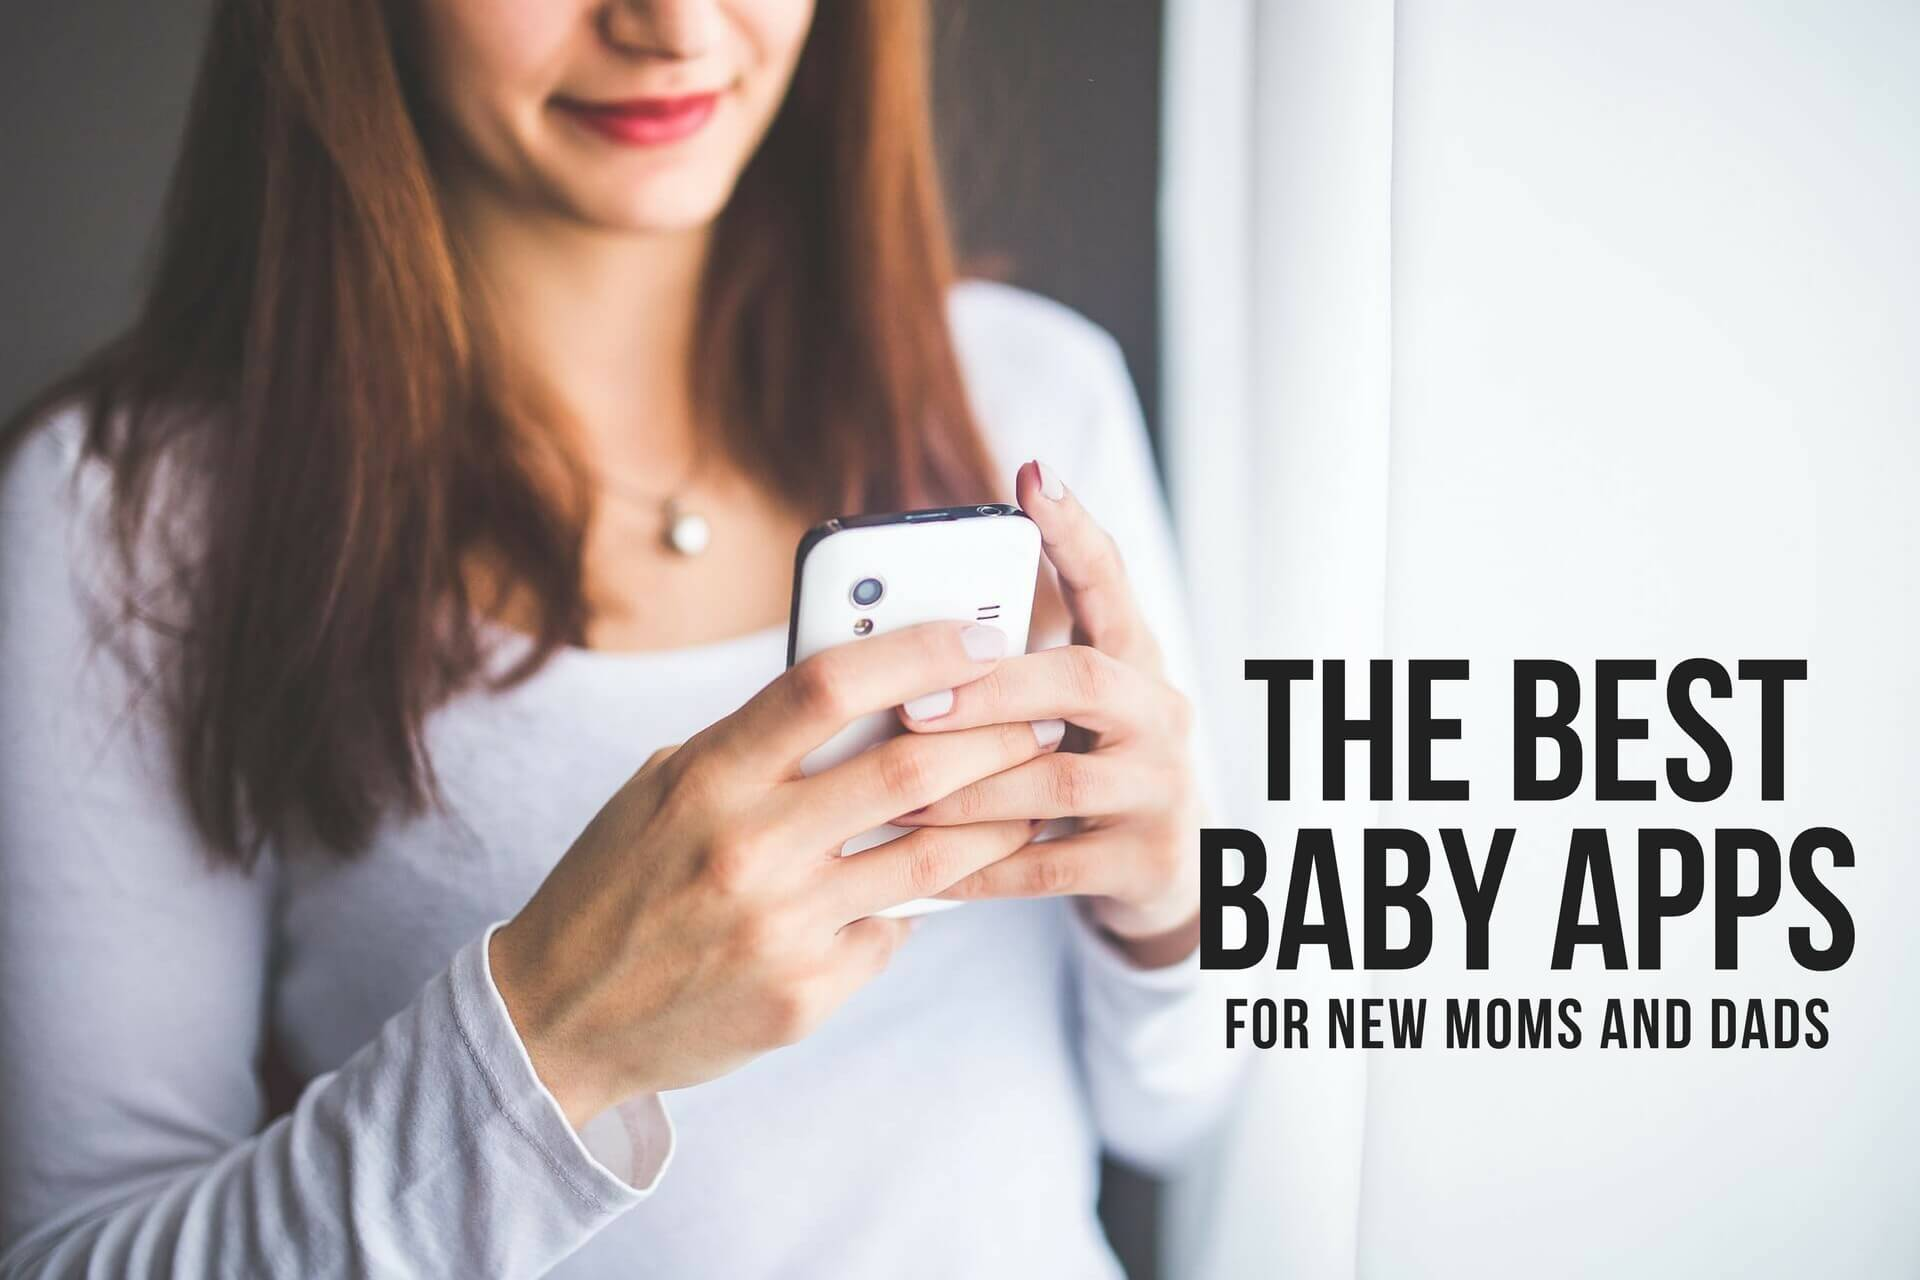 THE BEST BABY APPS FOR NEW MOMS AND DADS